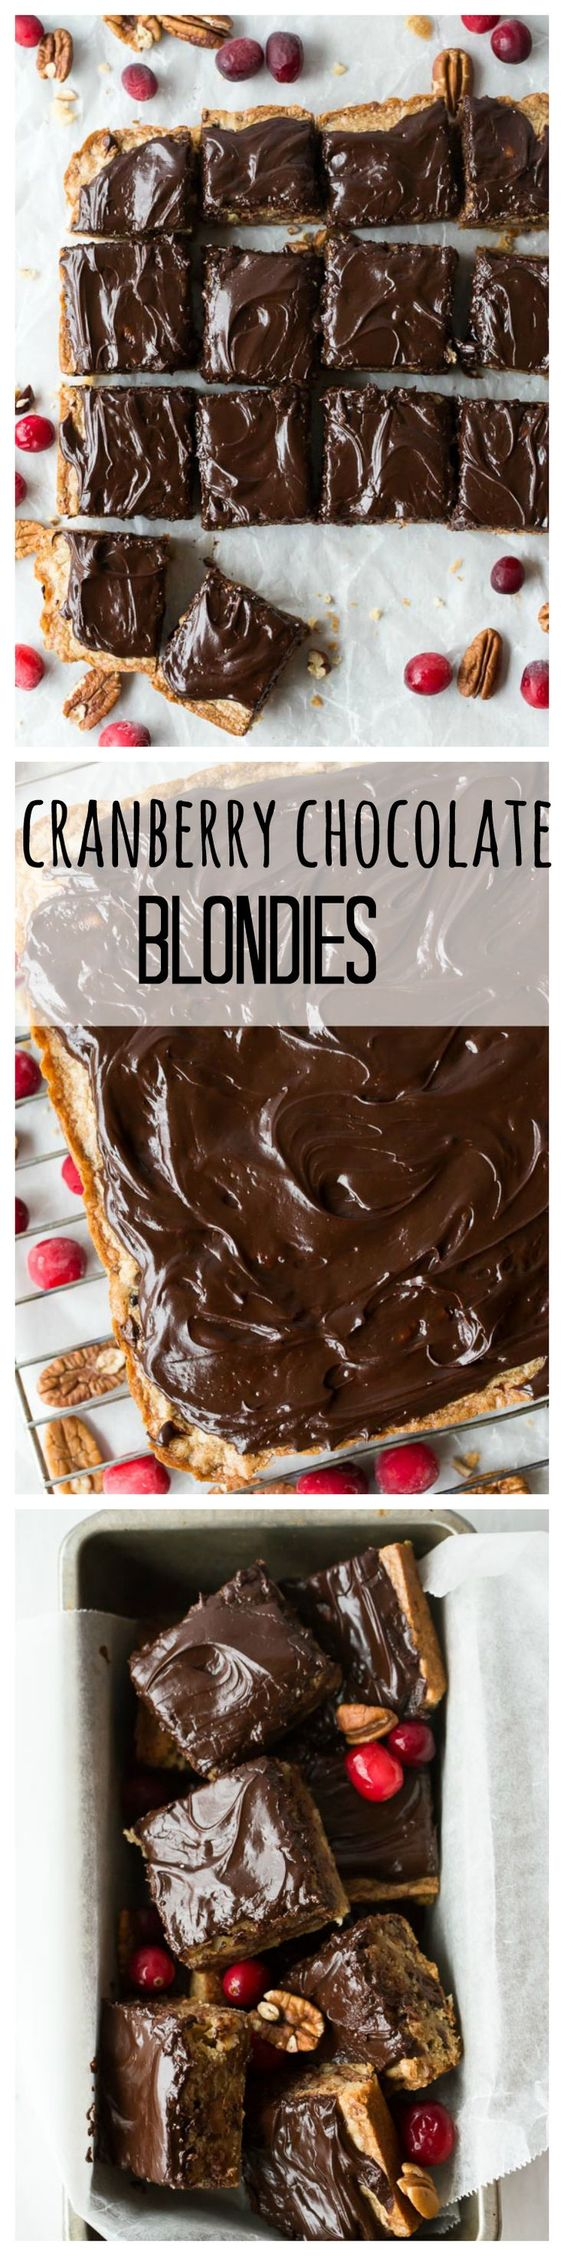 ... chocolate ganache — These Cranberry Chocolate Chunk Blondies are the